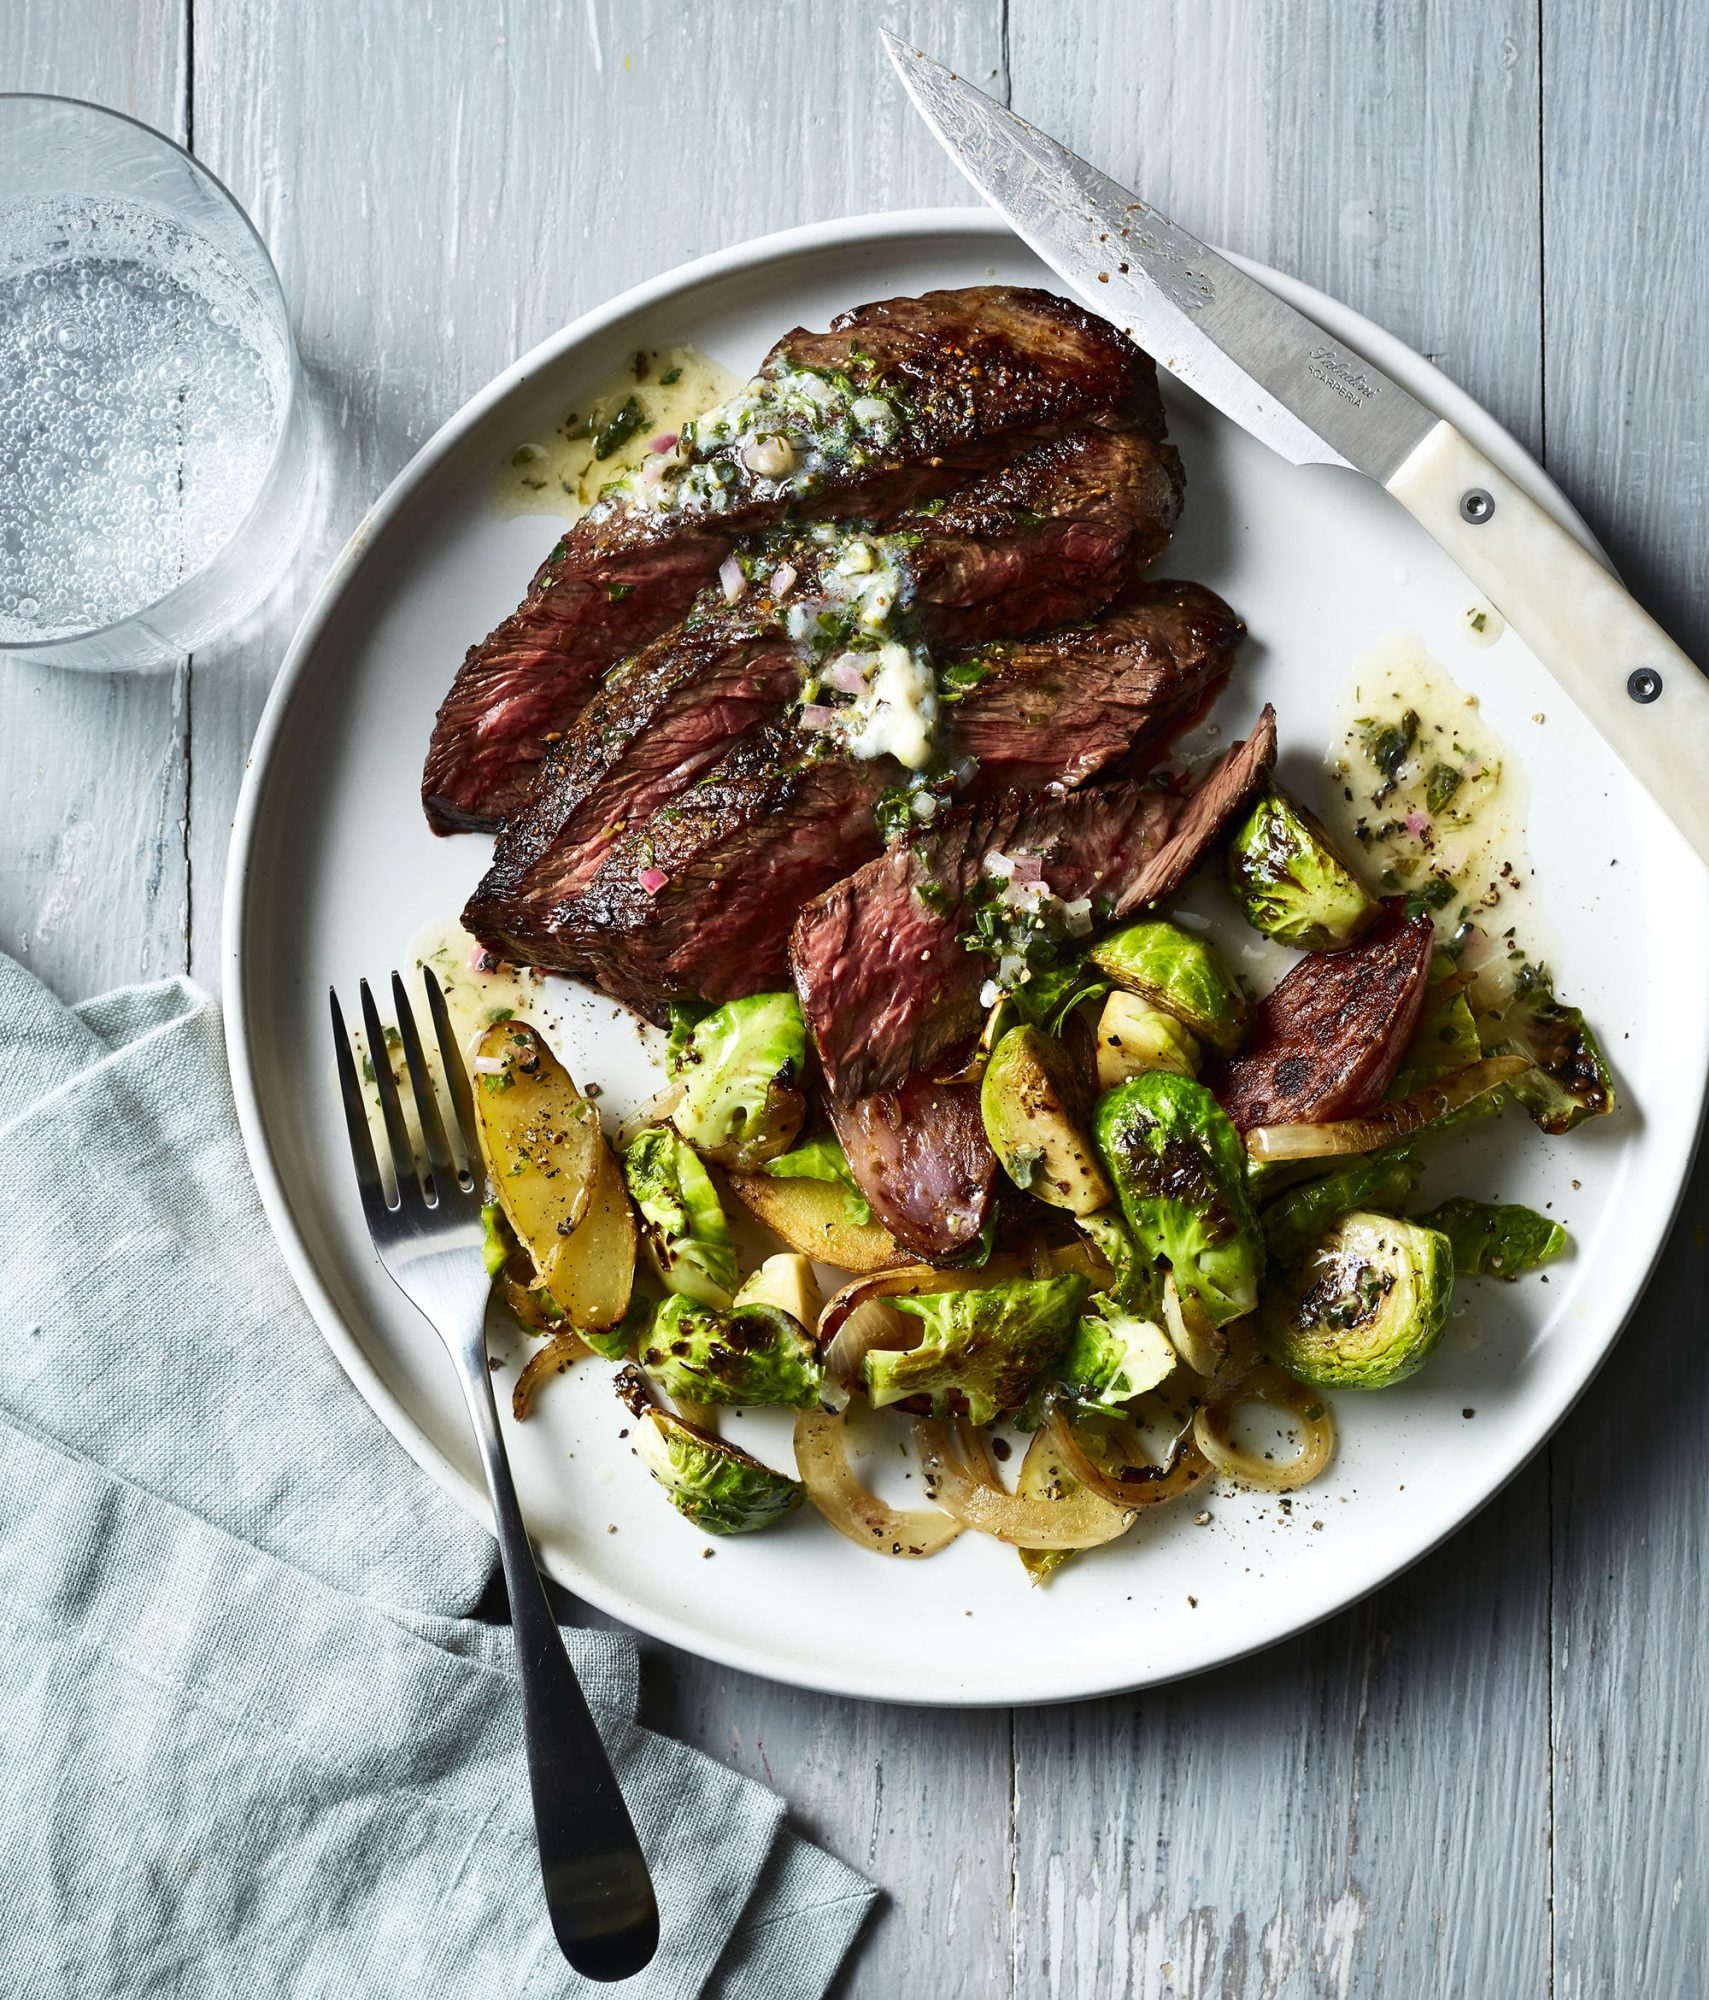 Pan-Seared Steak Is a Foolproof Valentine's Dinner